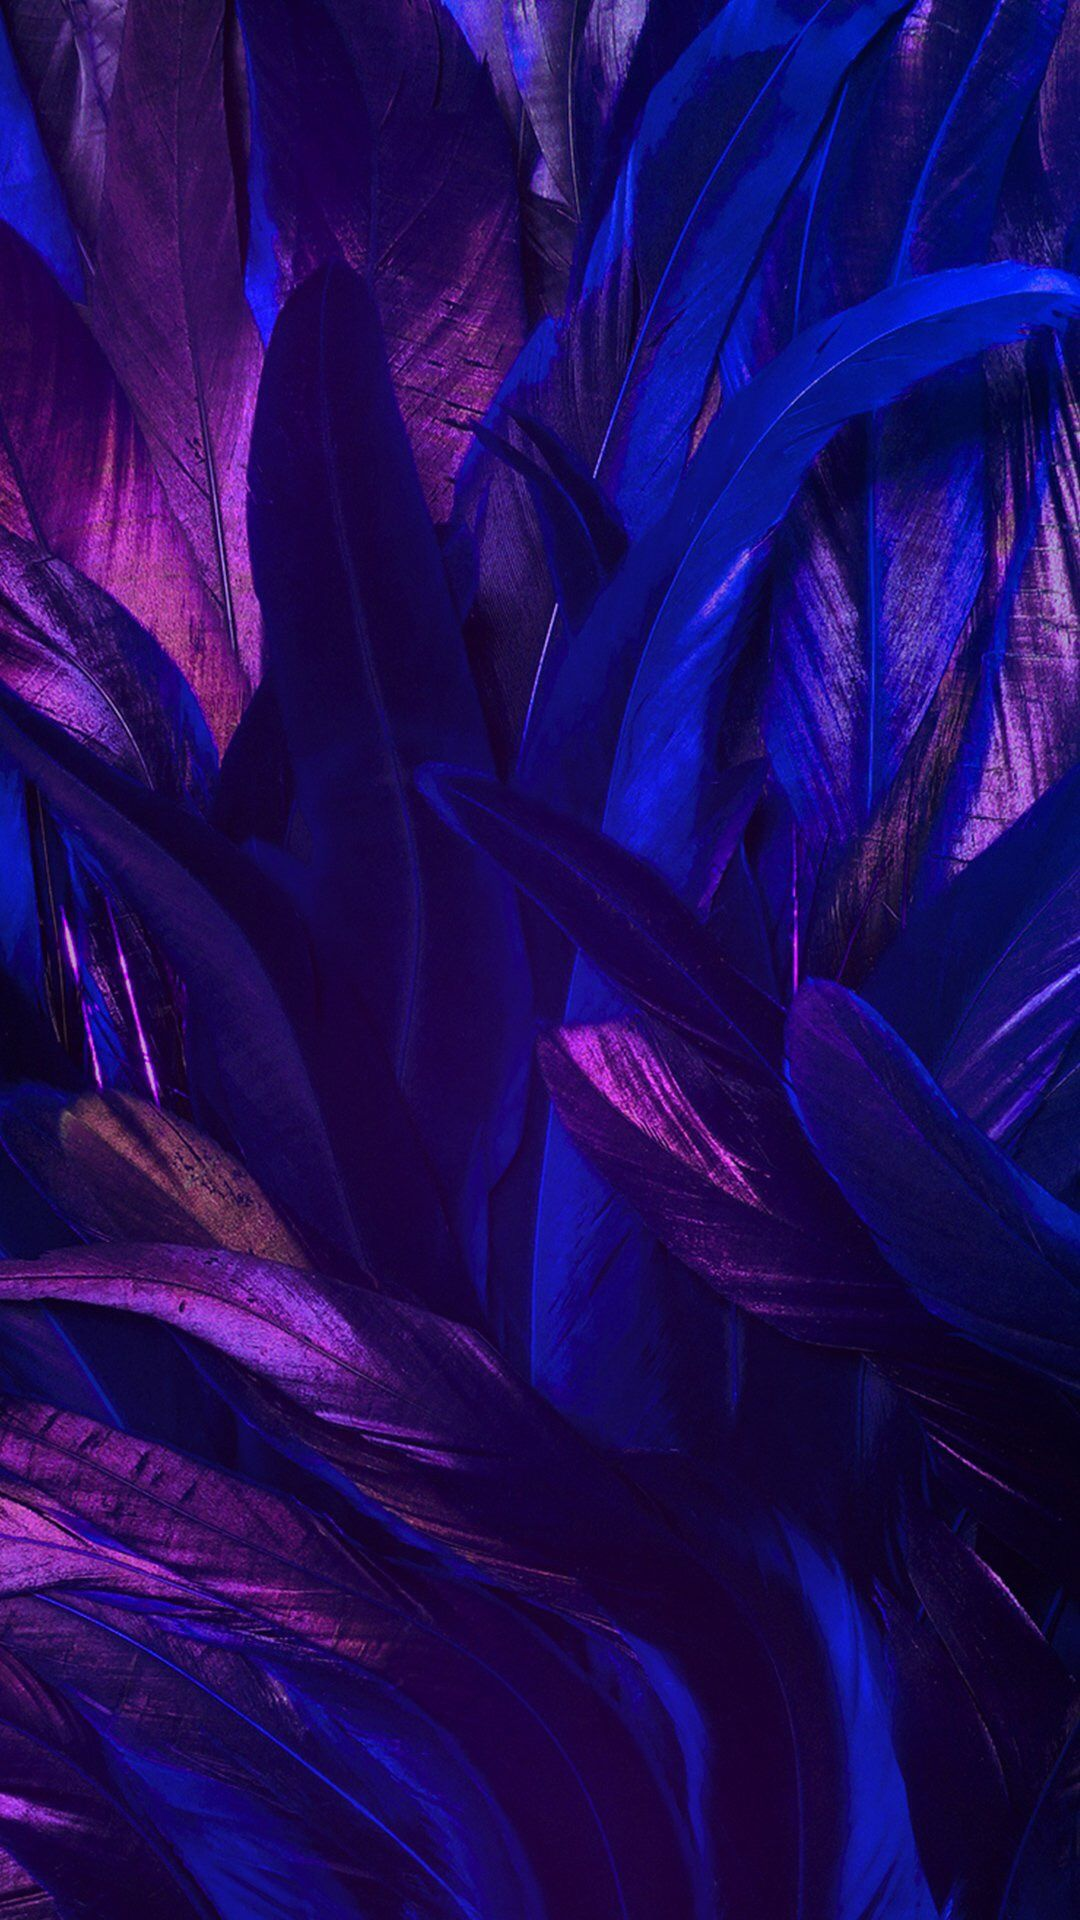 Pin by Angelito.x0 on iPhone Wallpapers Purple wallpaper